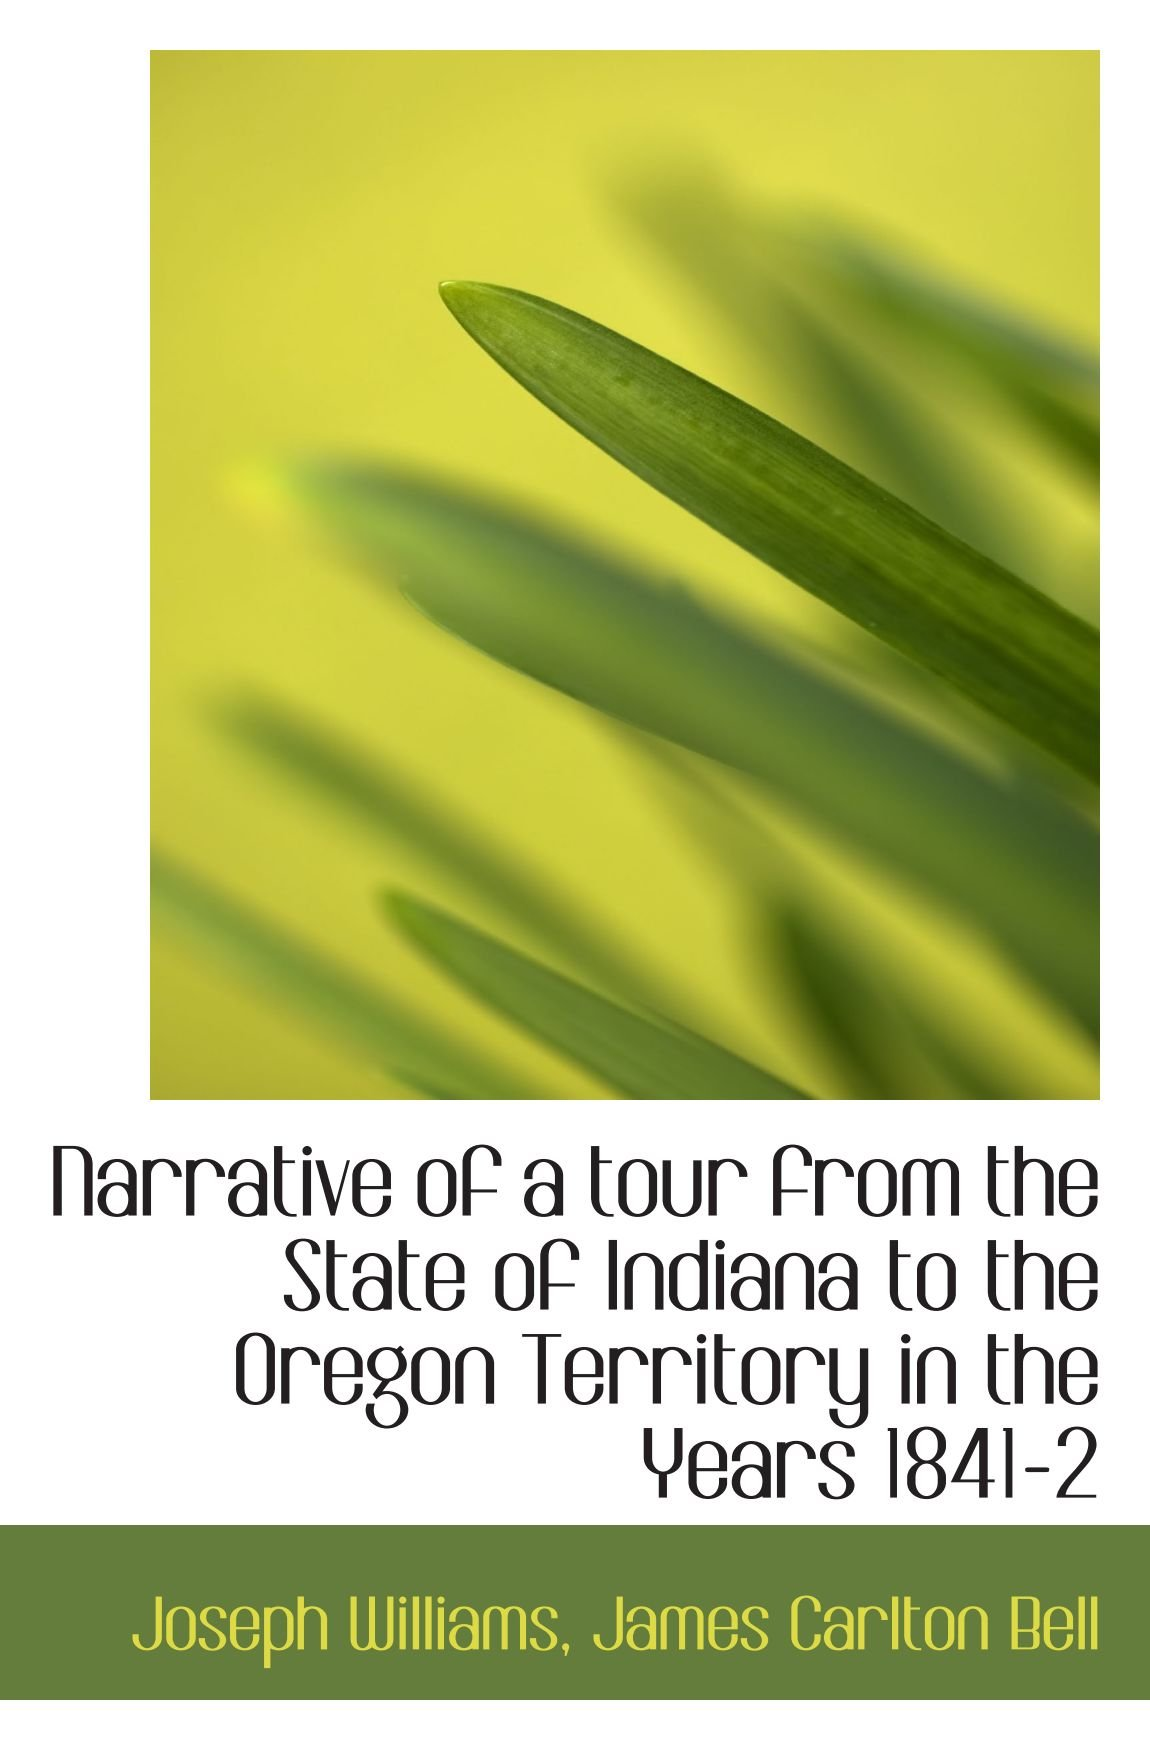 Narrative of a tour from the State of Indiana to the Oregon Territory in the Years 1841-2 pdf